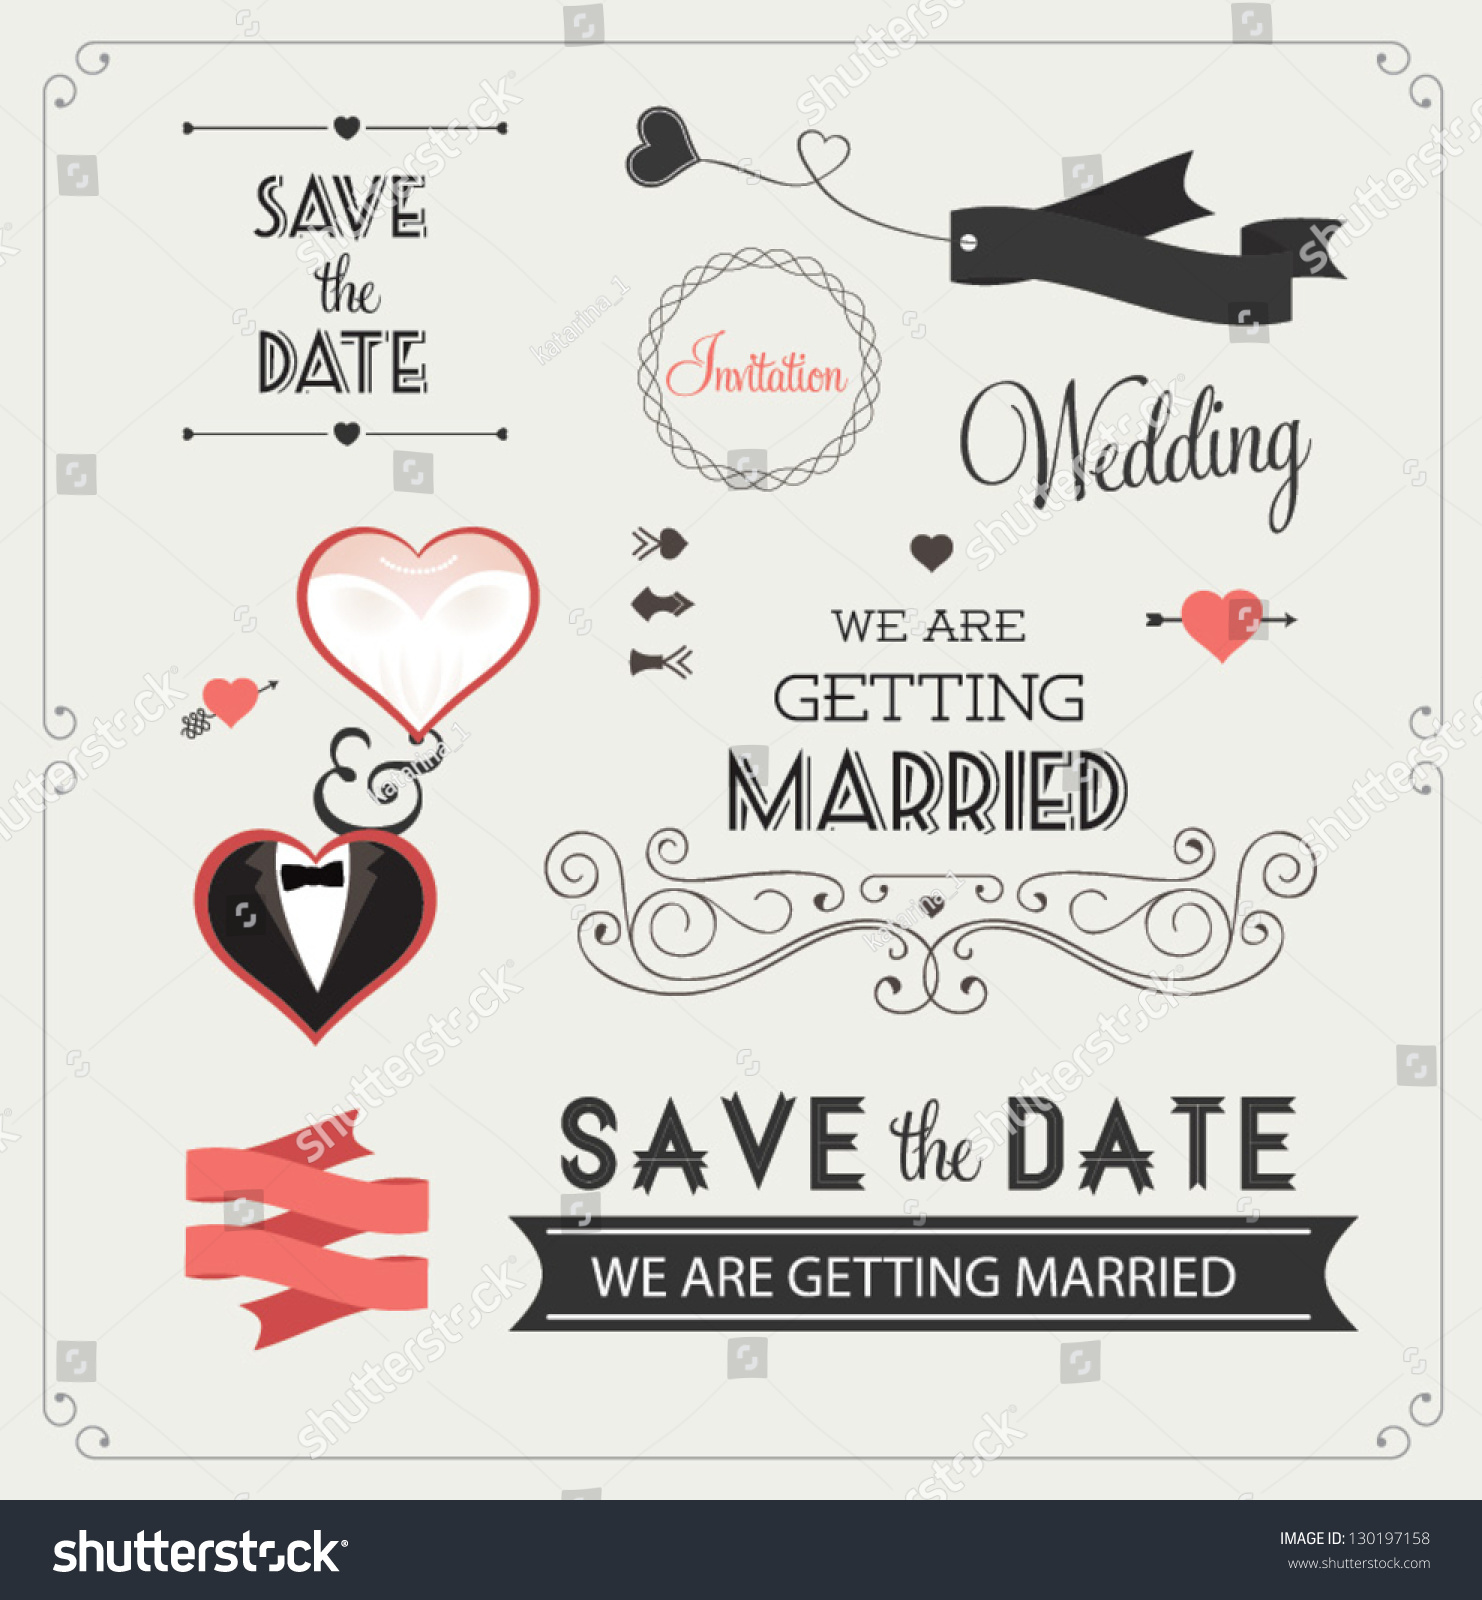 royalty free set of wedding ornaments and decorative